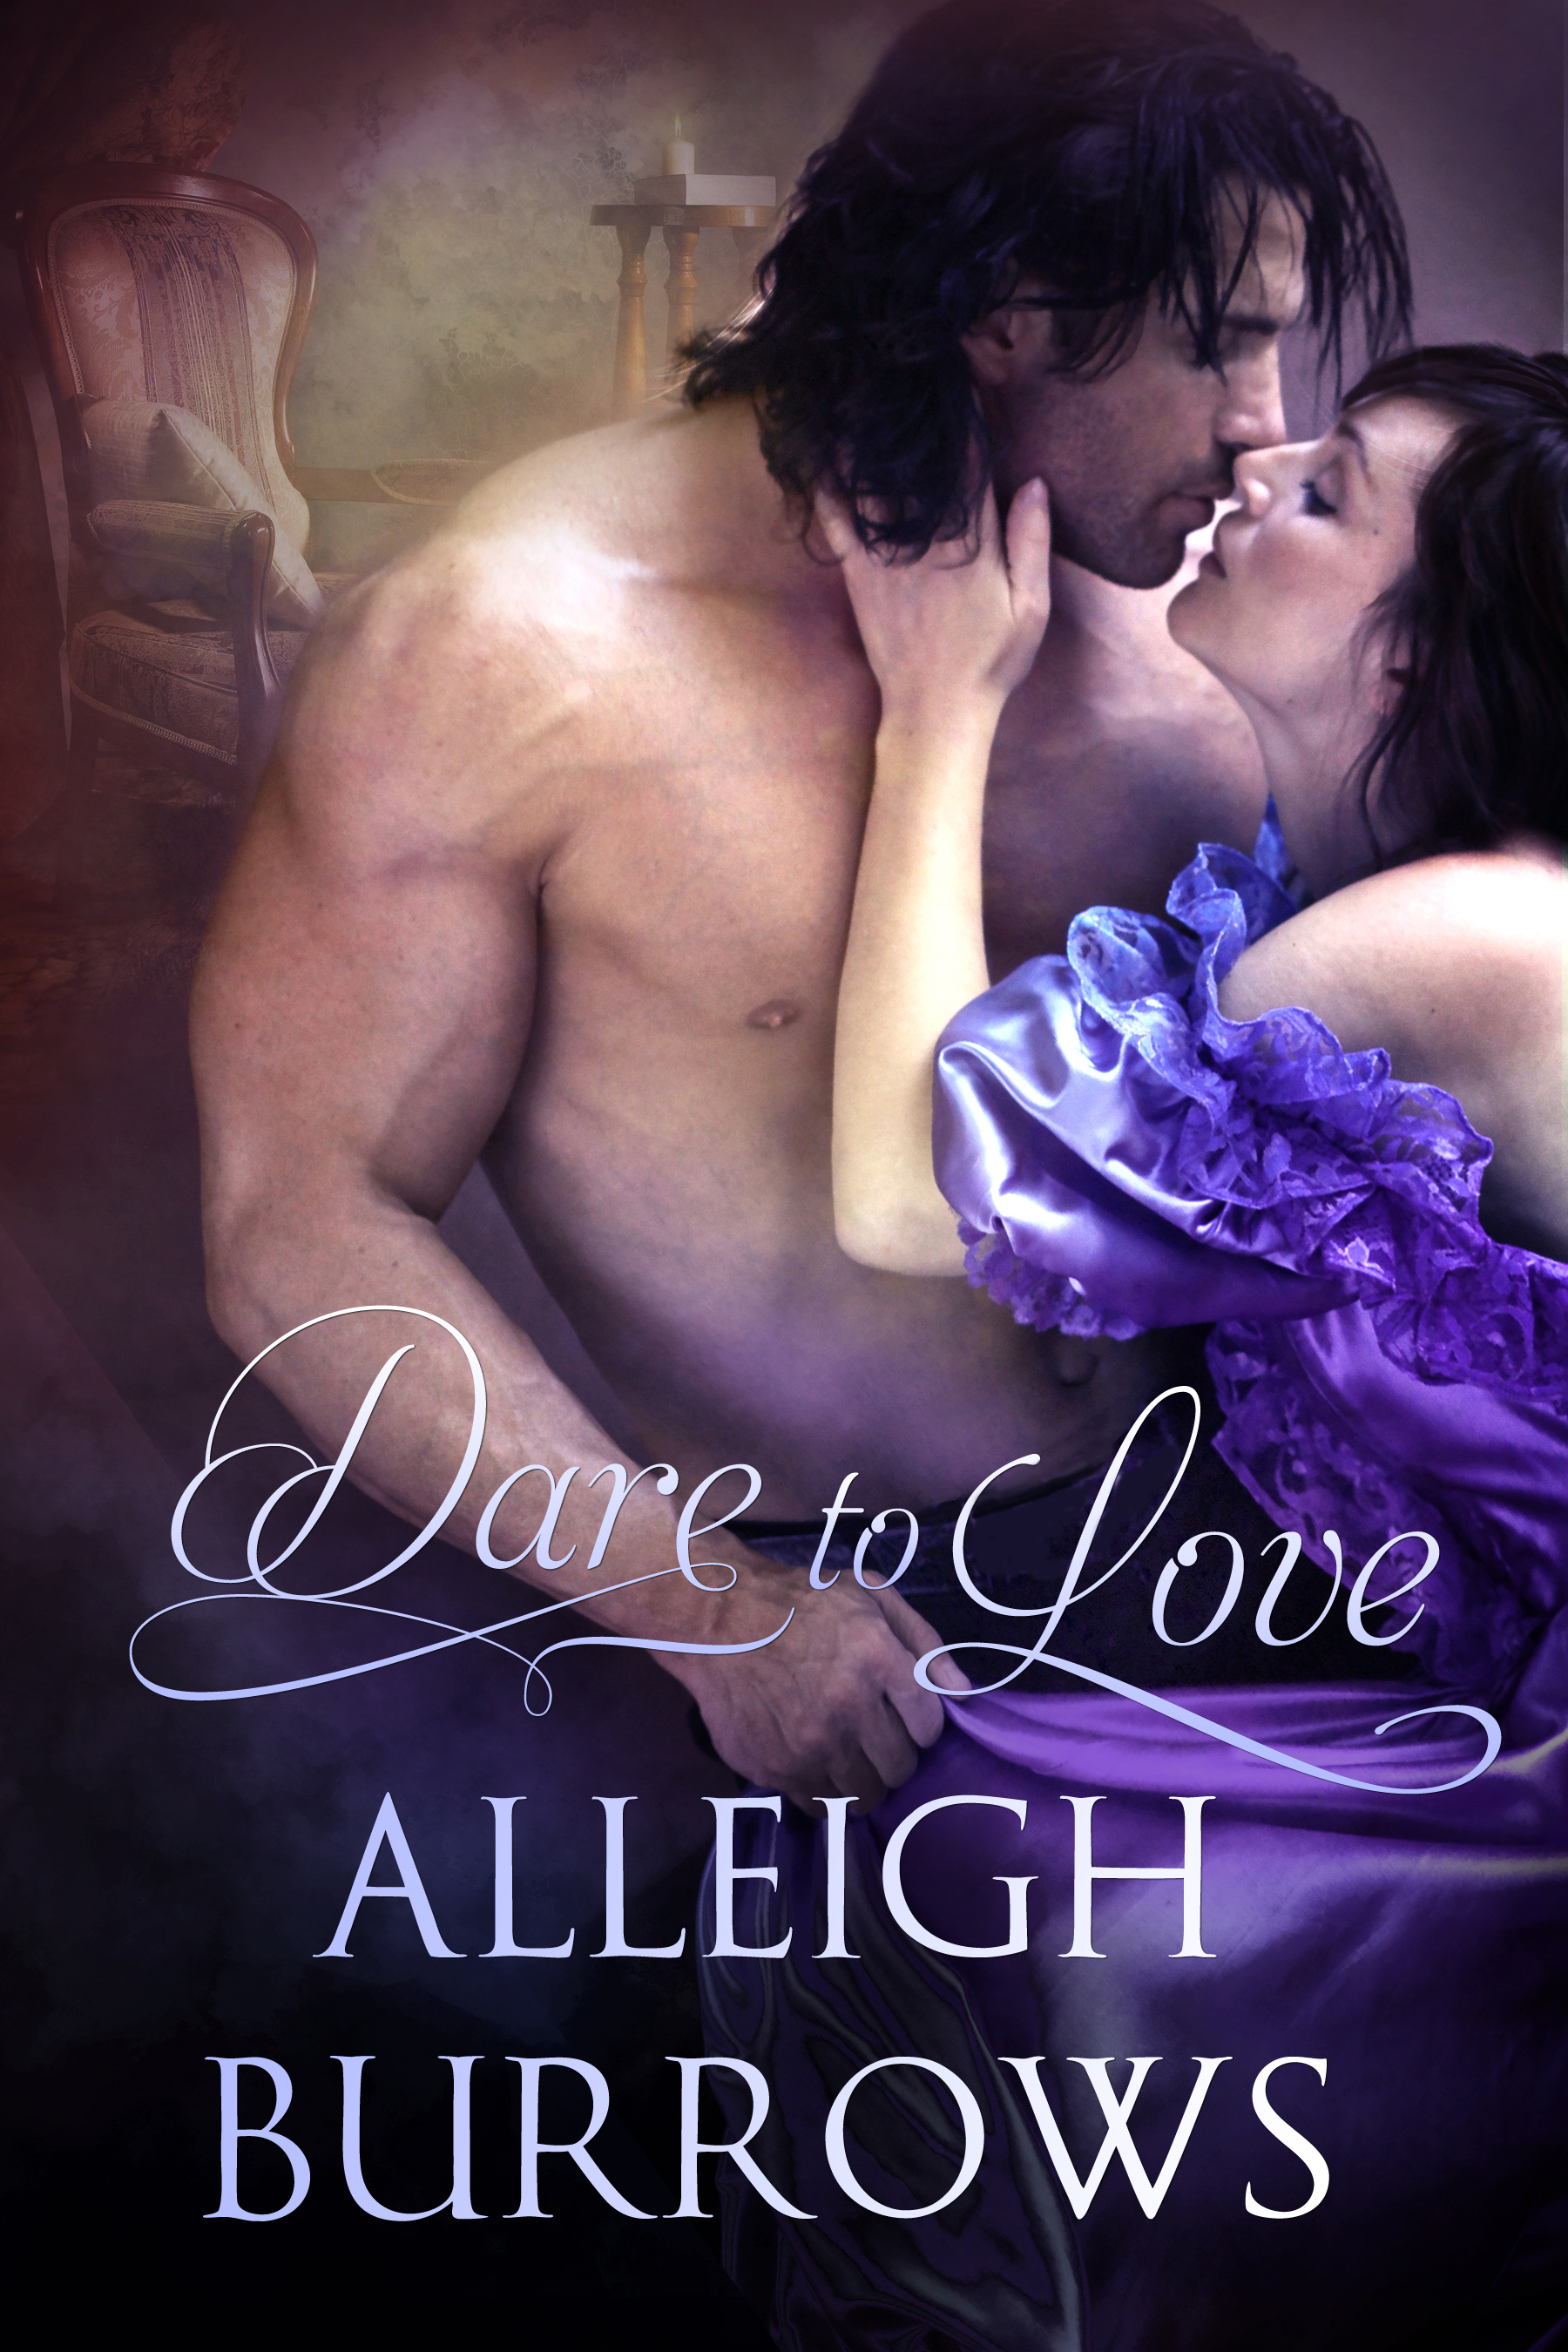 Alleigh Burrows' debut book DARE TO LOVE now up for preorder!